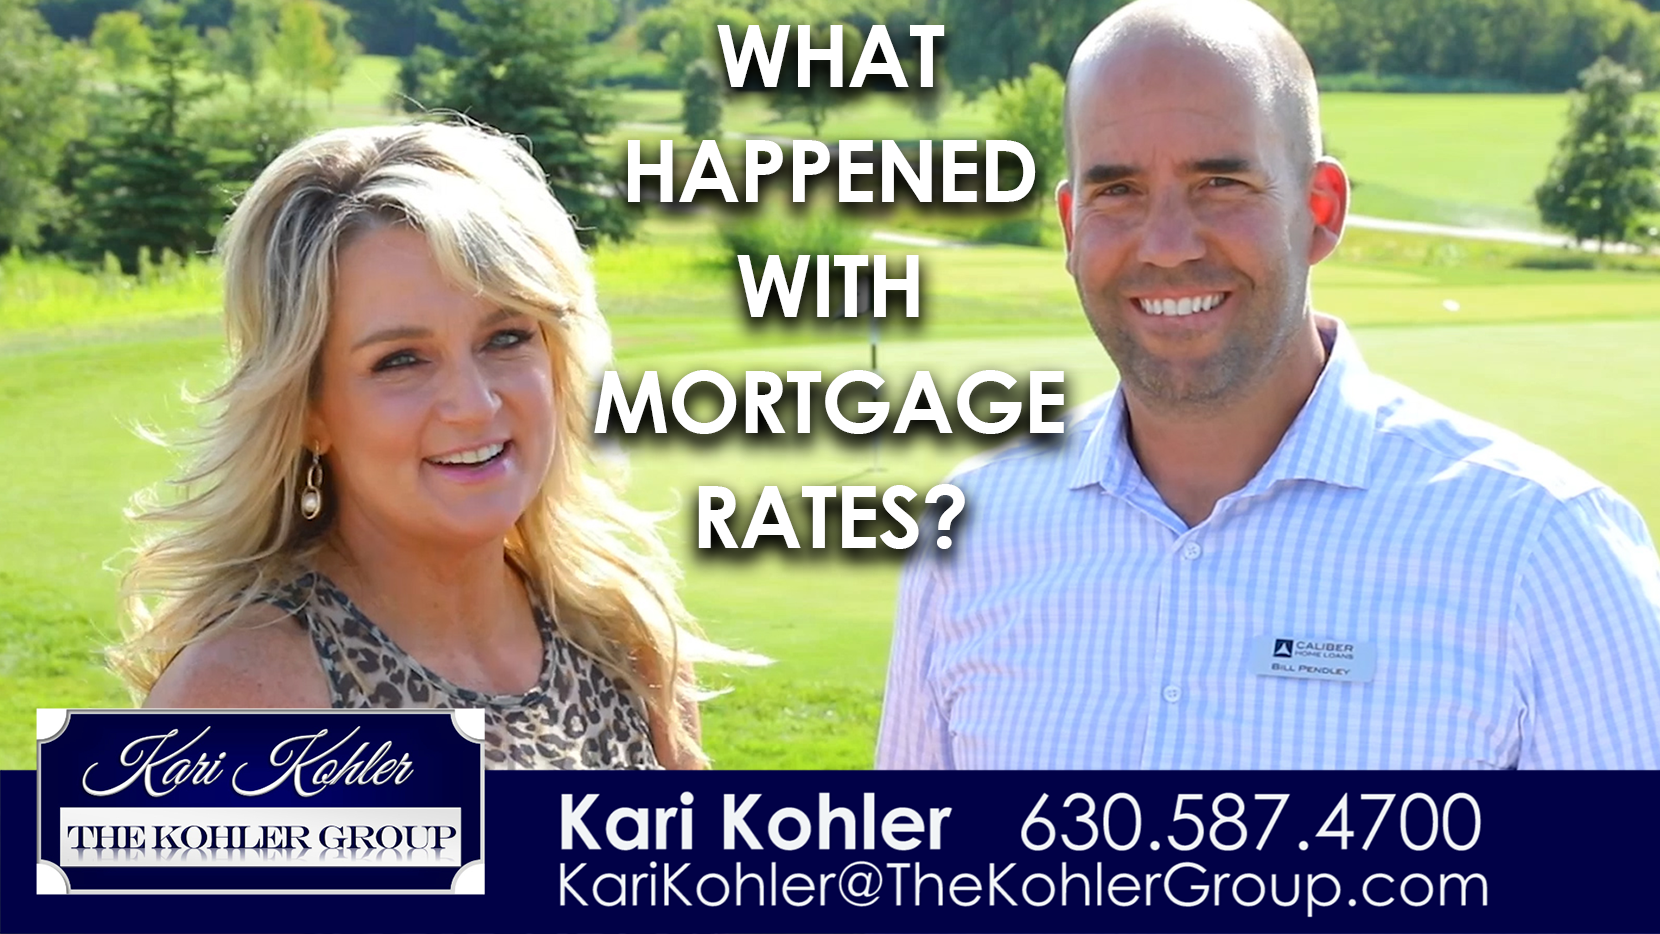 What Happened With Mortgage Rates?